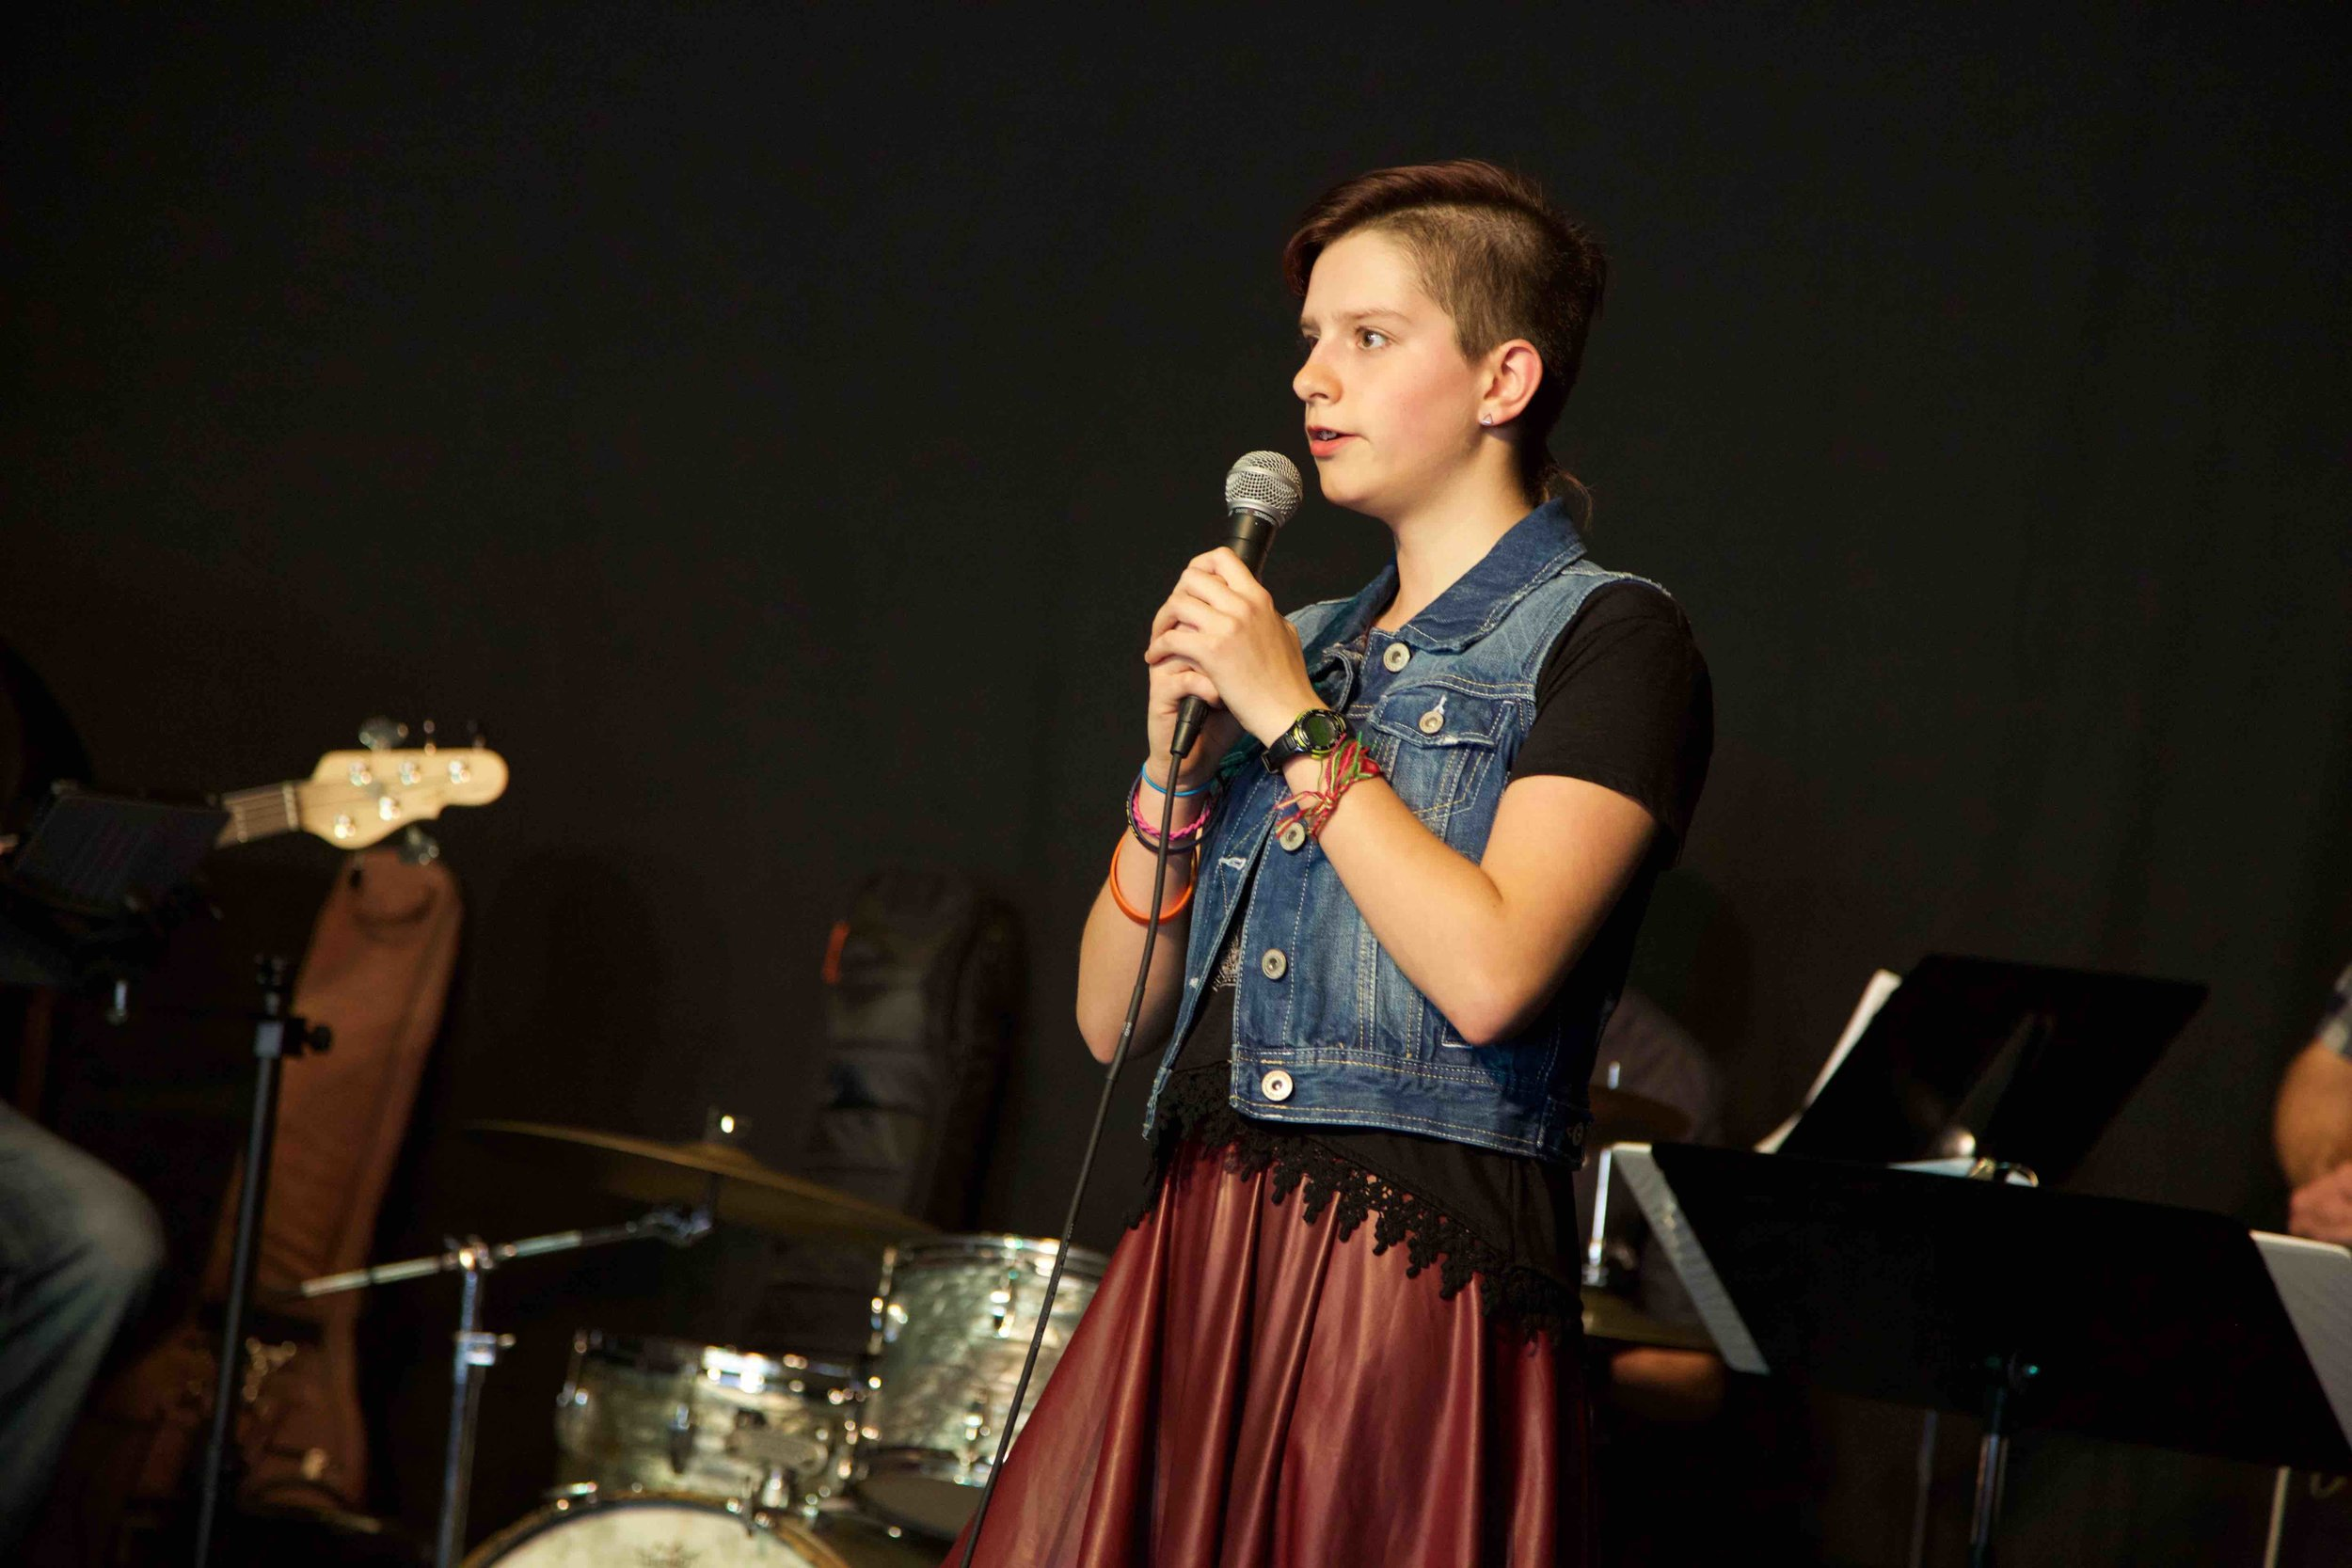 Snoqualmie singing lessons for kids, teens, and adults at Cascade Voice Academy (formerly Issaquah Voice Studio)